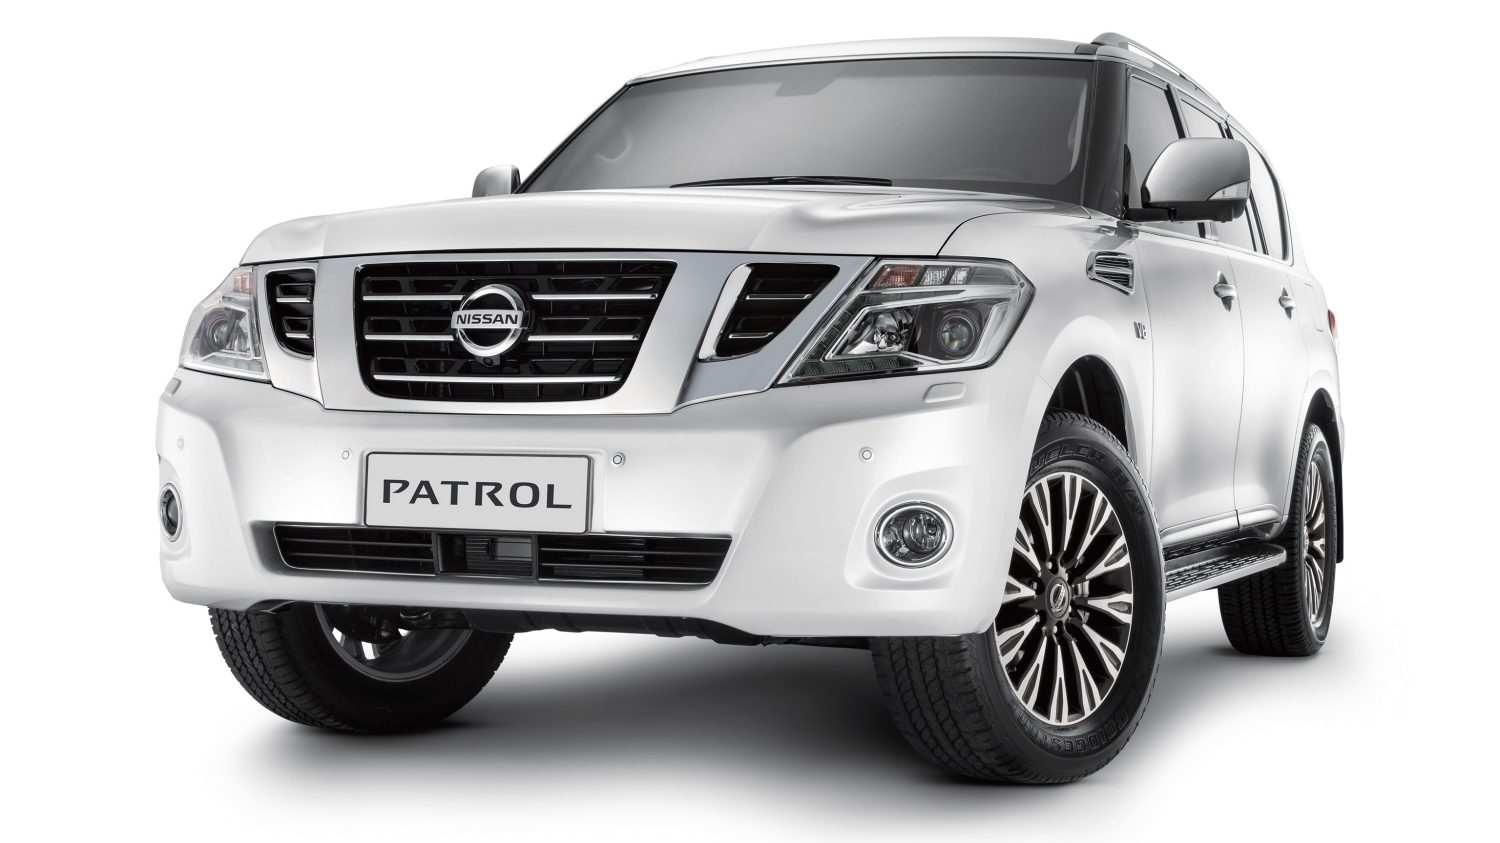 nissan patrol off road suv nissan dubai. Black Bedroom Furniture Sets. Home Design Ideas